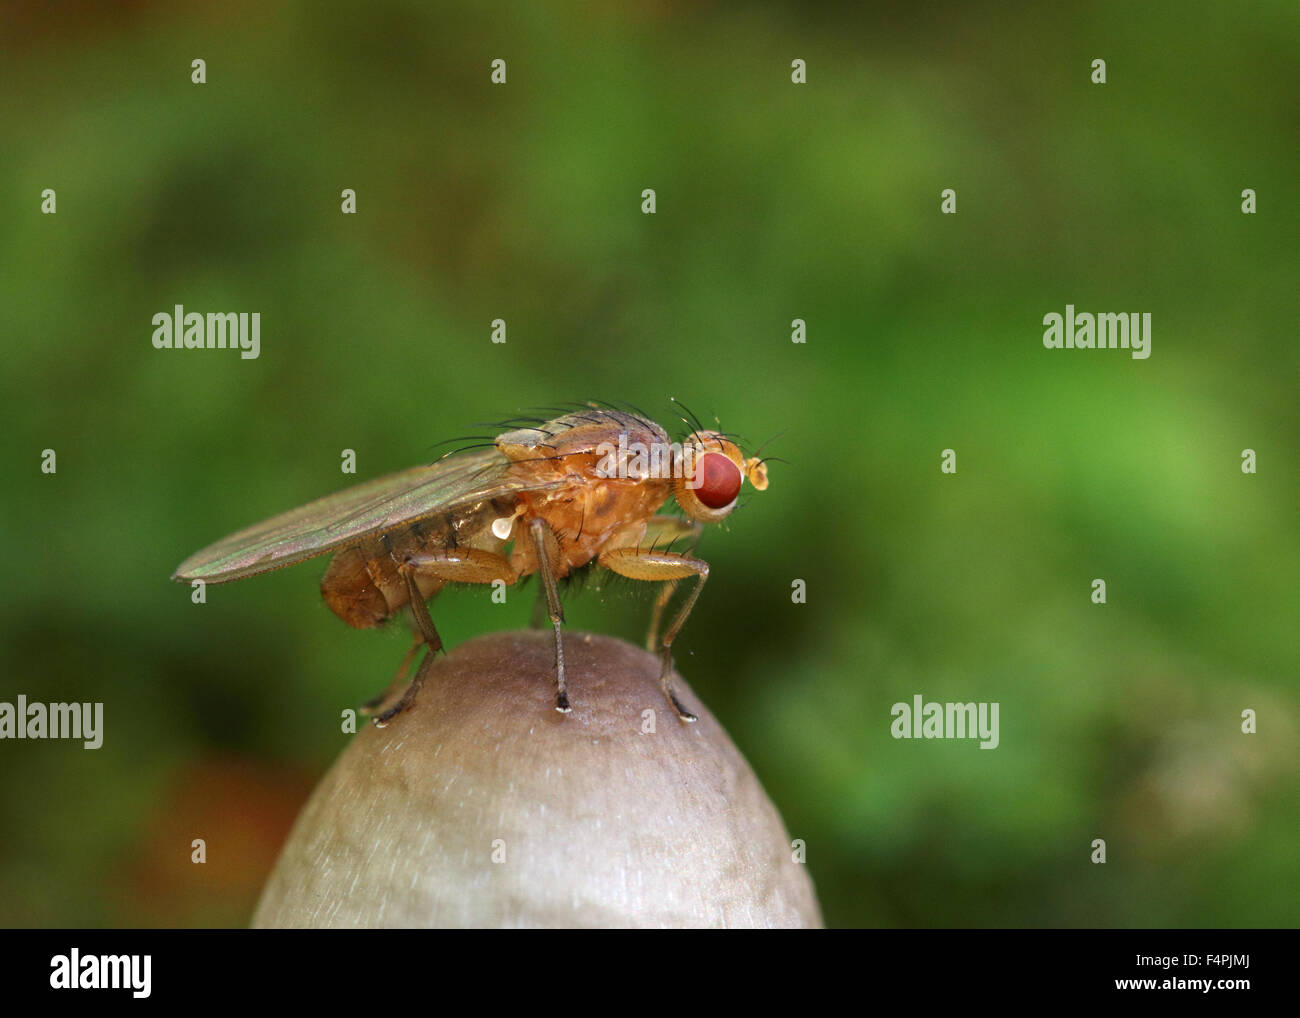 Clusiid fly using the top of a small fungi as a lekking ground to attract females - Stock Image